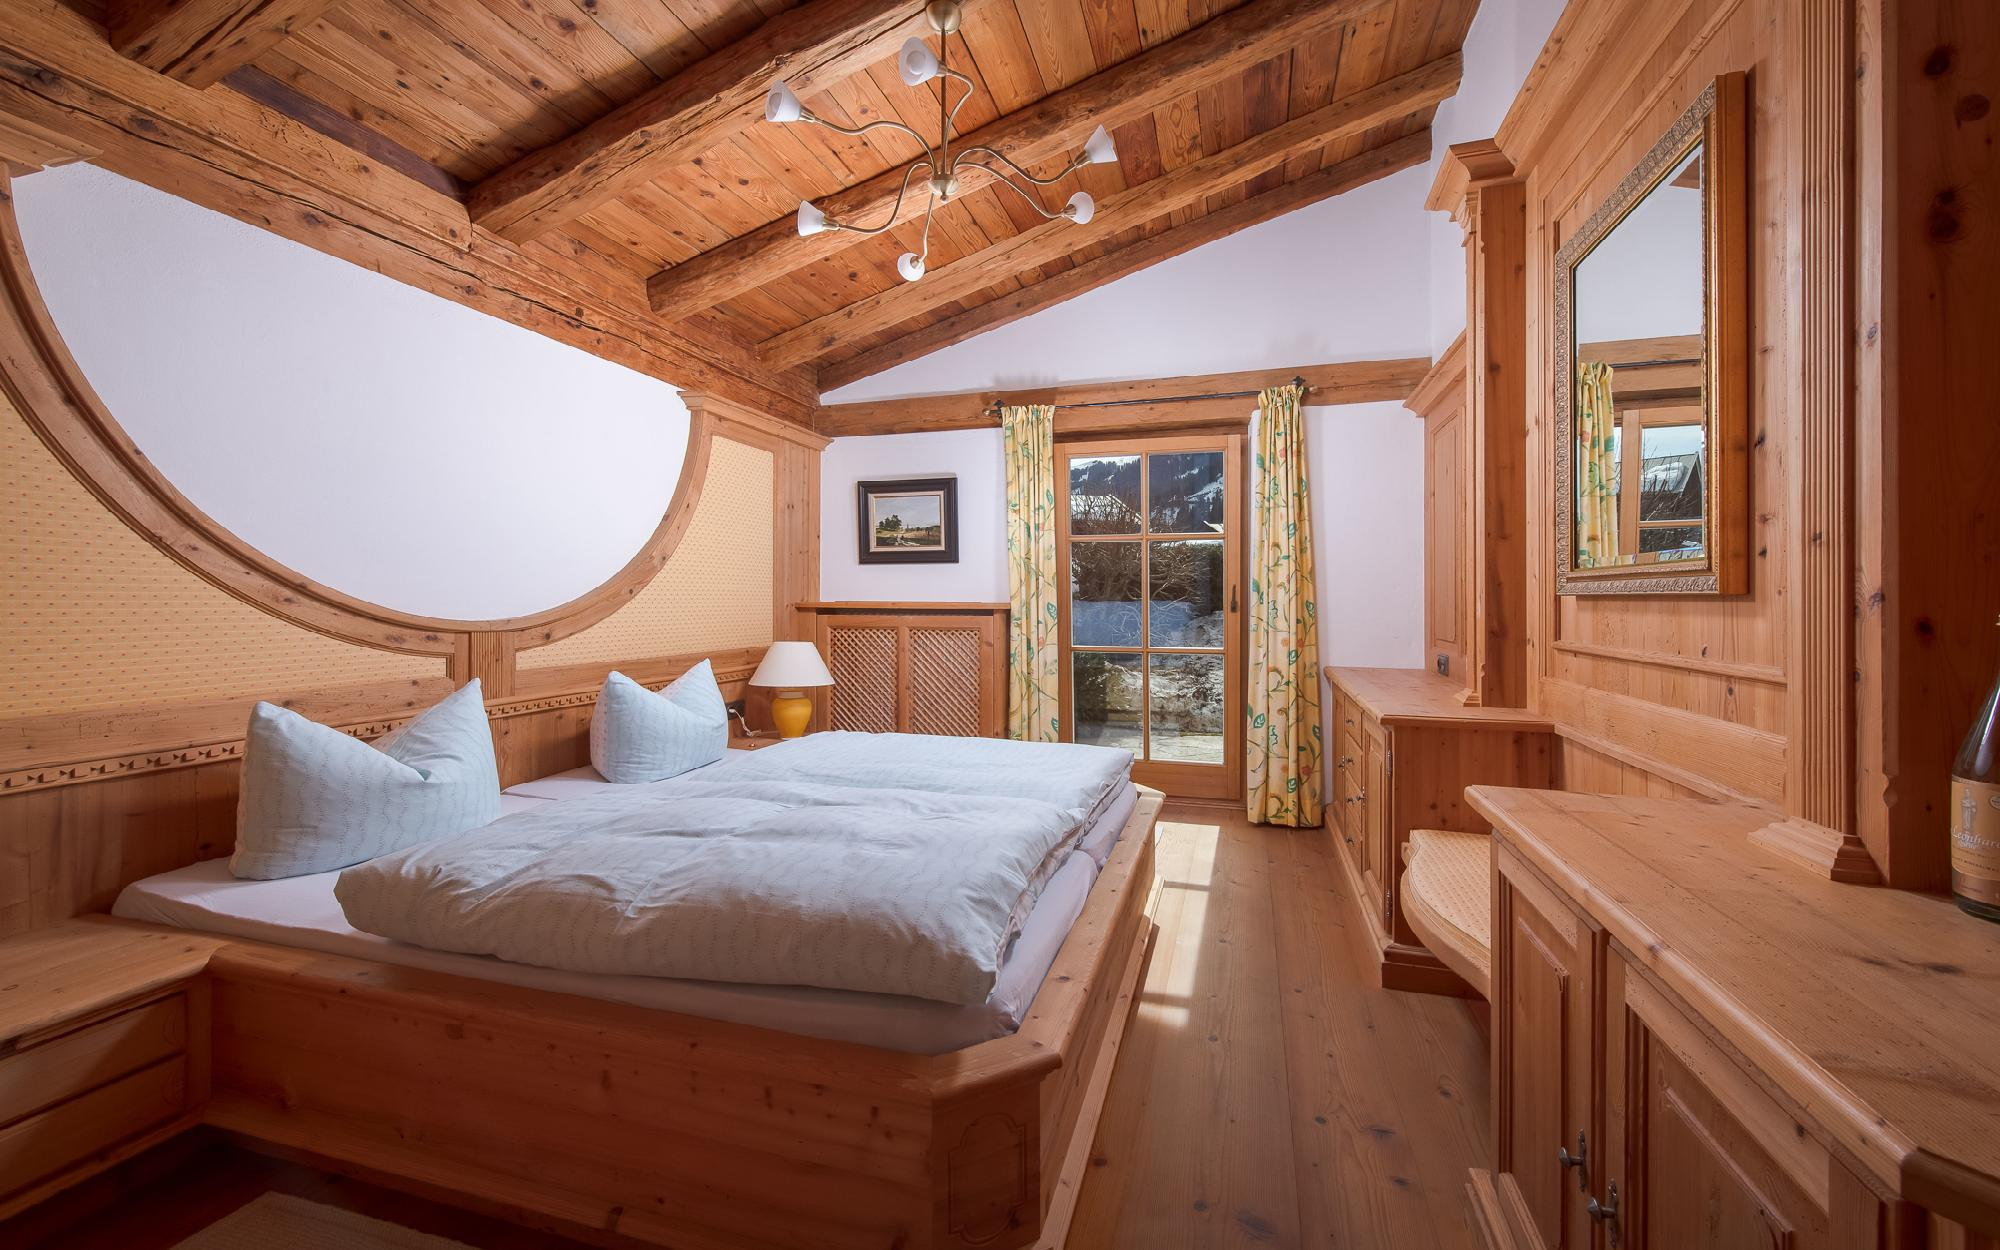 Enchanting Alpine chalet in an excellent location of Kitzbühel for Sale